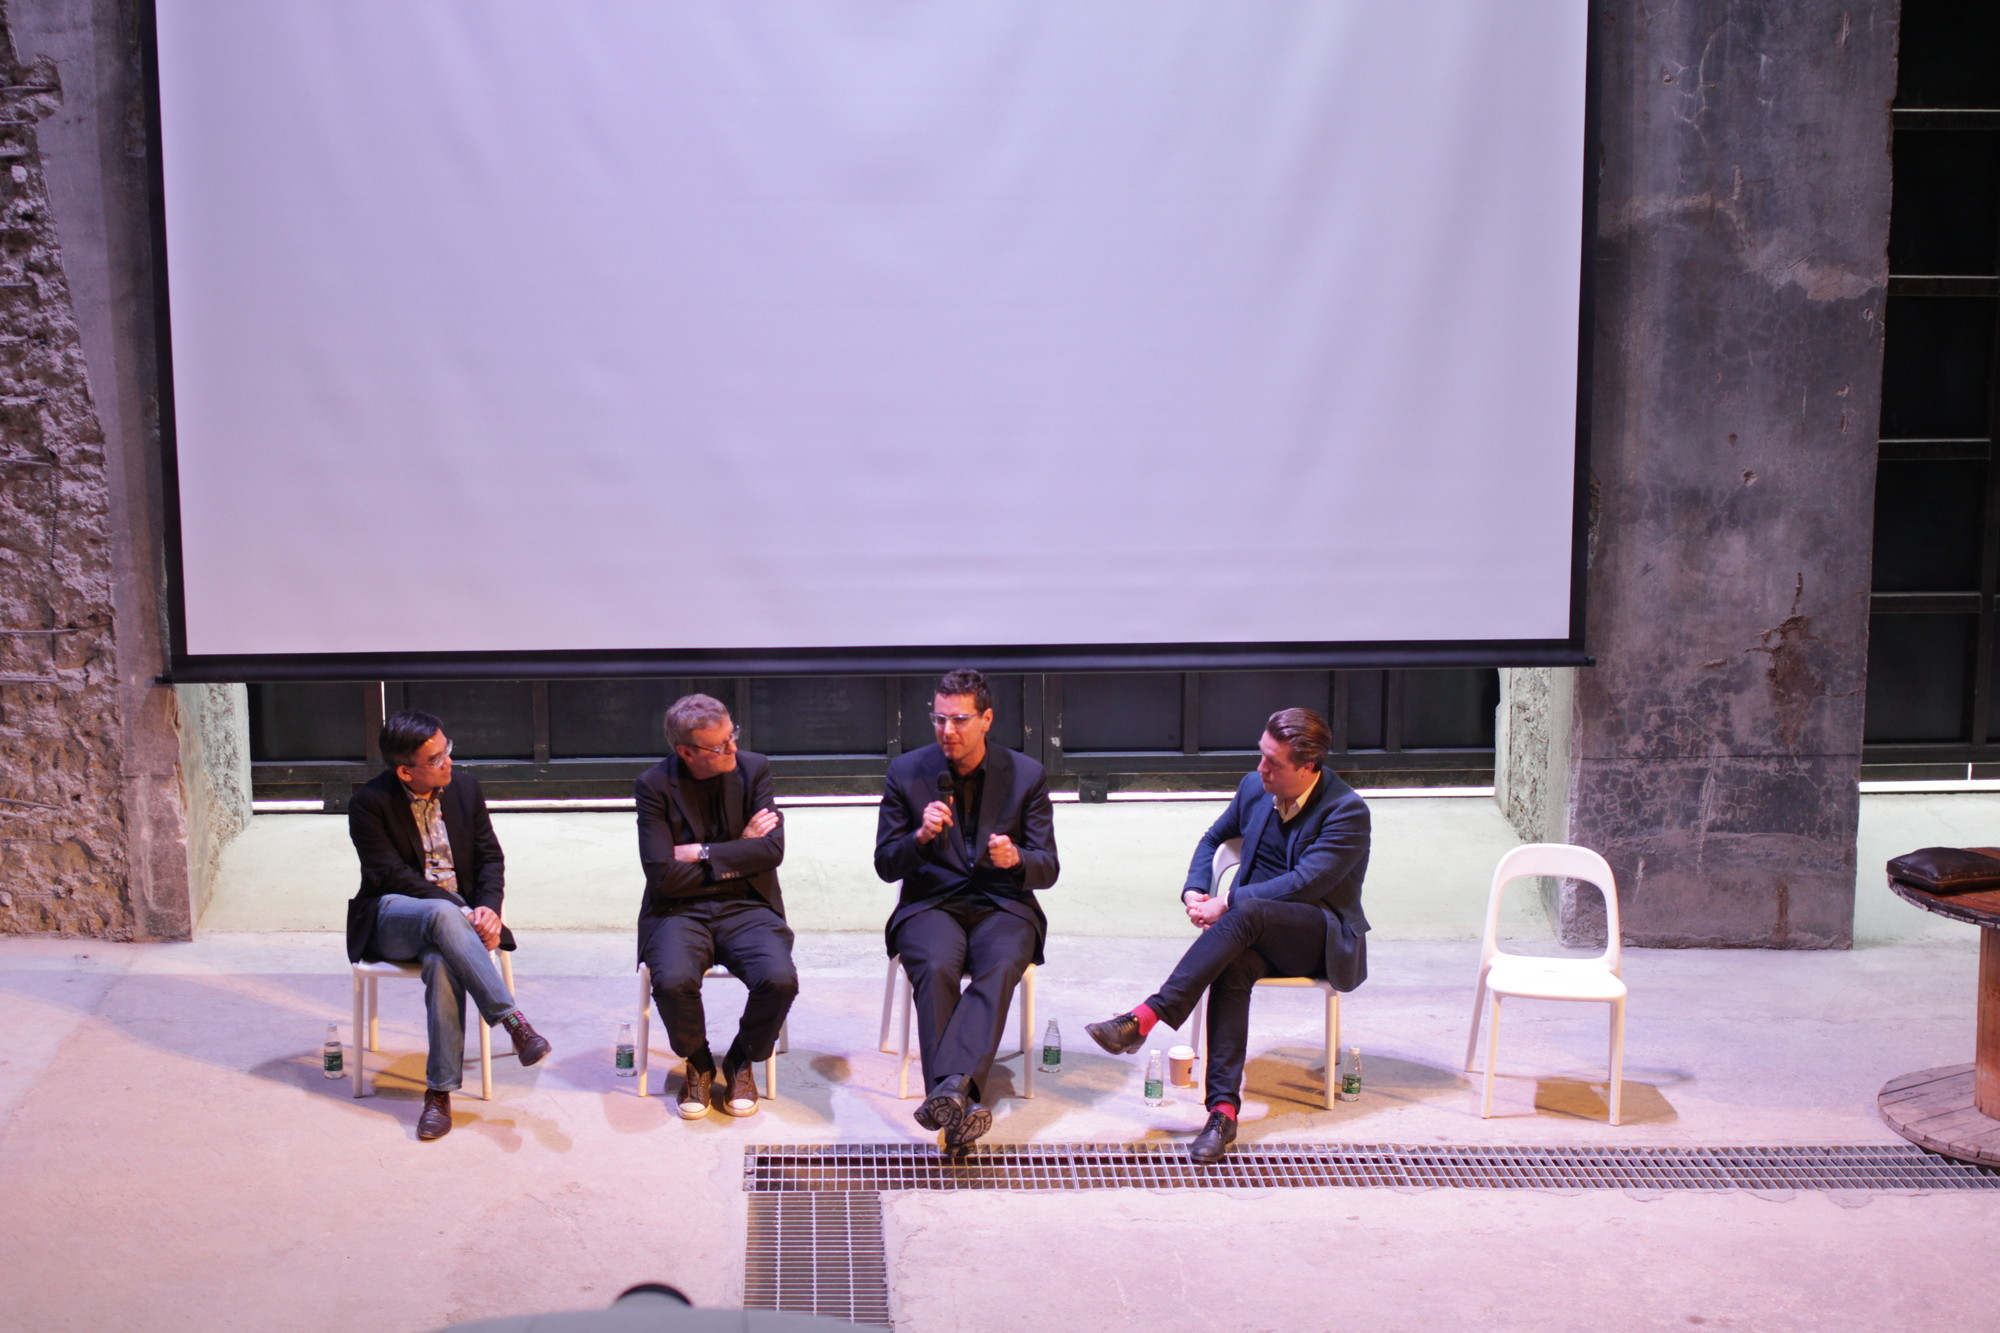 The Future of Architecture Education - Discussion panel with Puay-peng Ho (Chinese University of Hong Kong), Mark Wigley (Columbia GSAPP), Alexander D'Hooghe (MIT), Nanne de Ru (The Berlage) moderated by Ole Bouman © ArchDaily